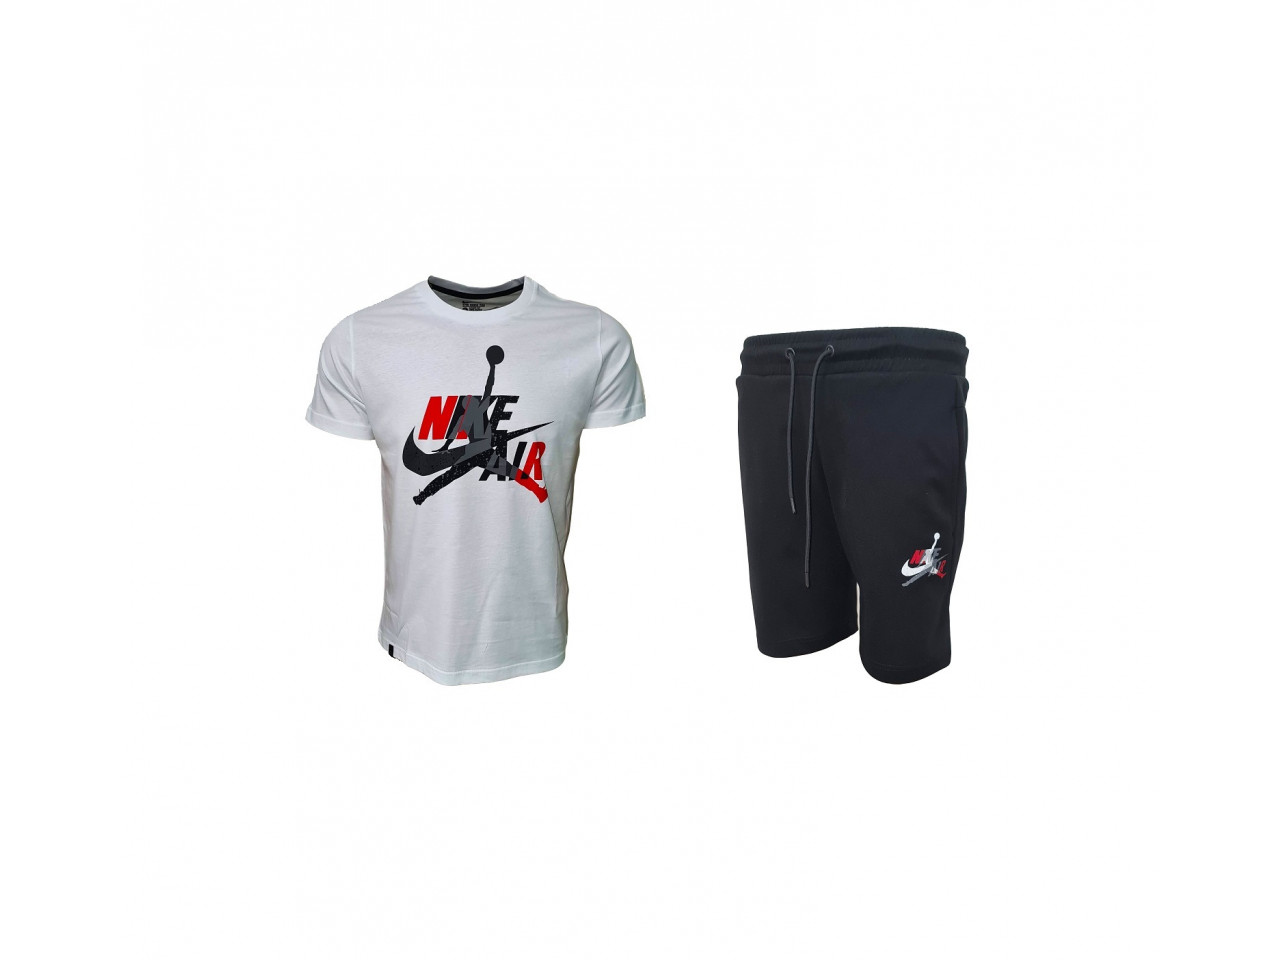 Nike AIR Shorts+ T-shirt White & Black